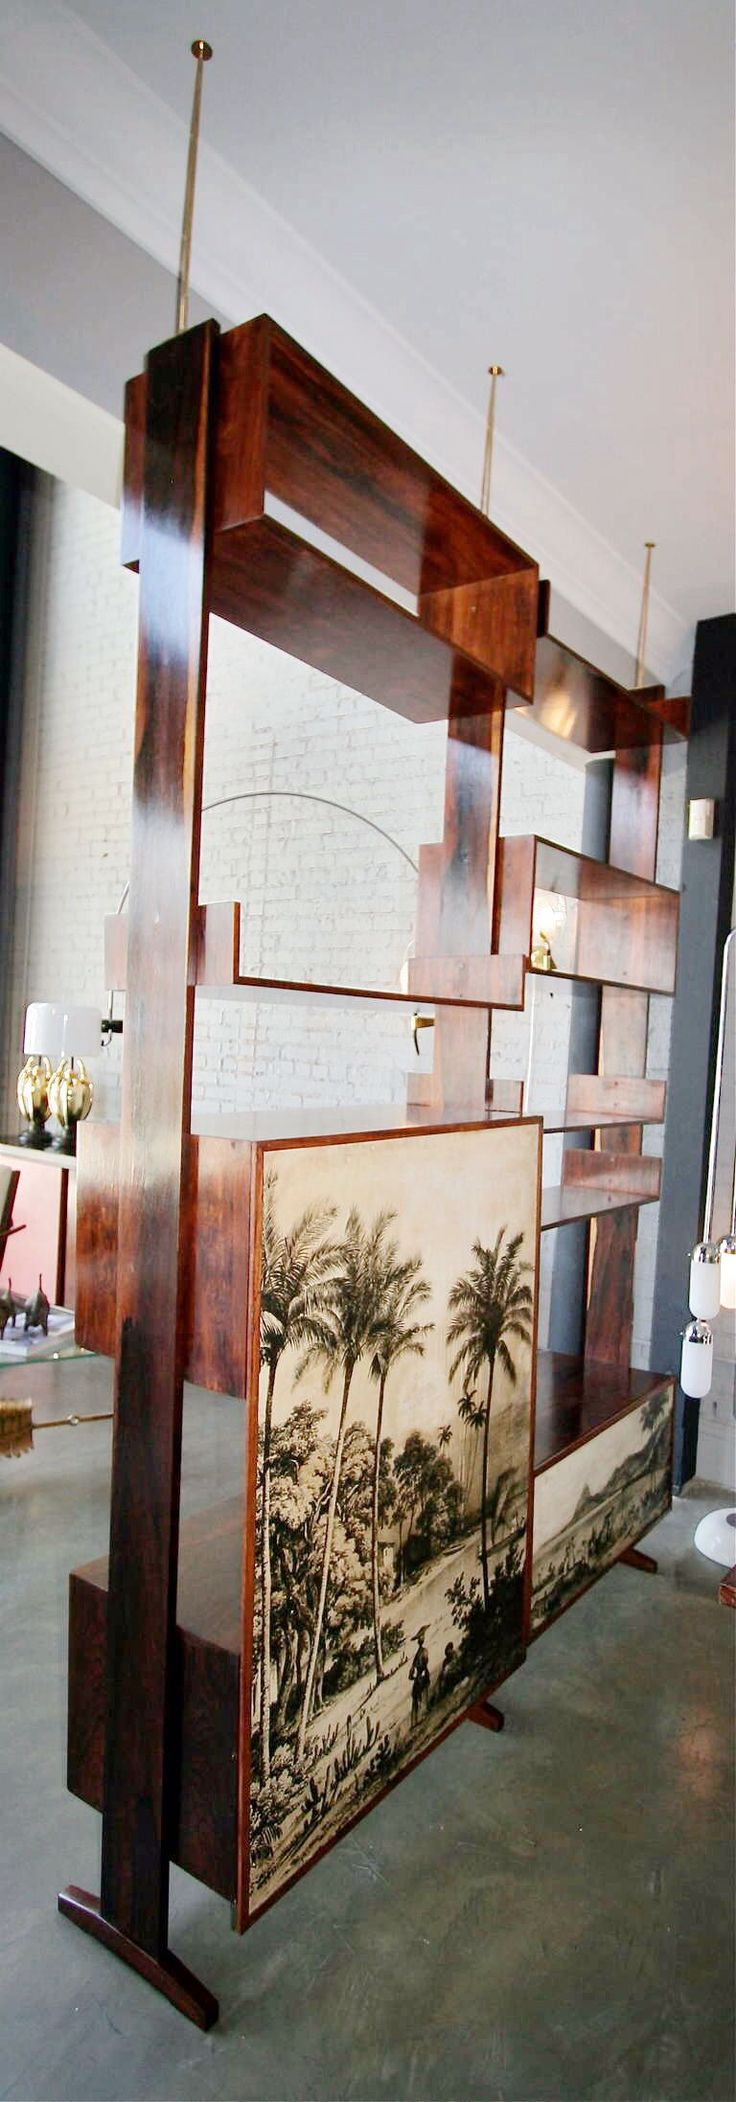 Mid Century Room Divider >> Pin by Rania Fahmy on Room dividers in 2019 | Mid century ...